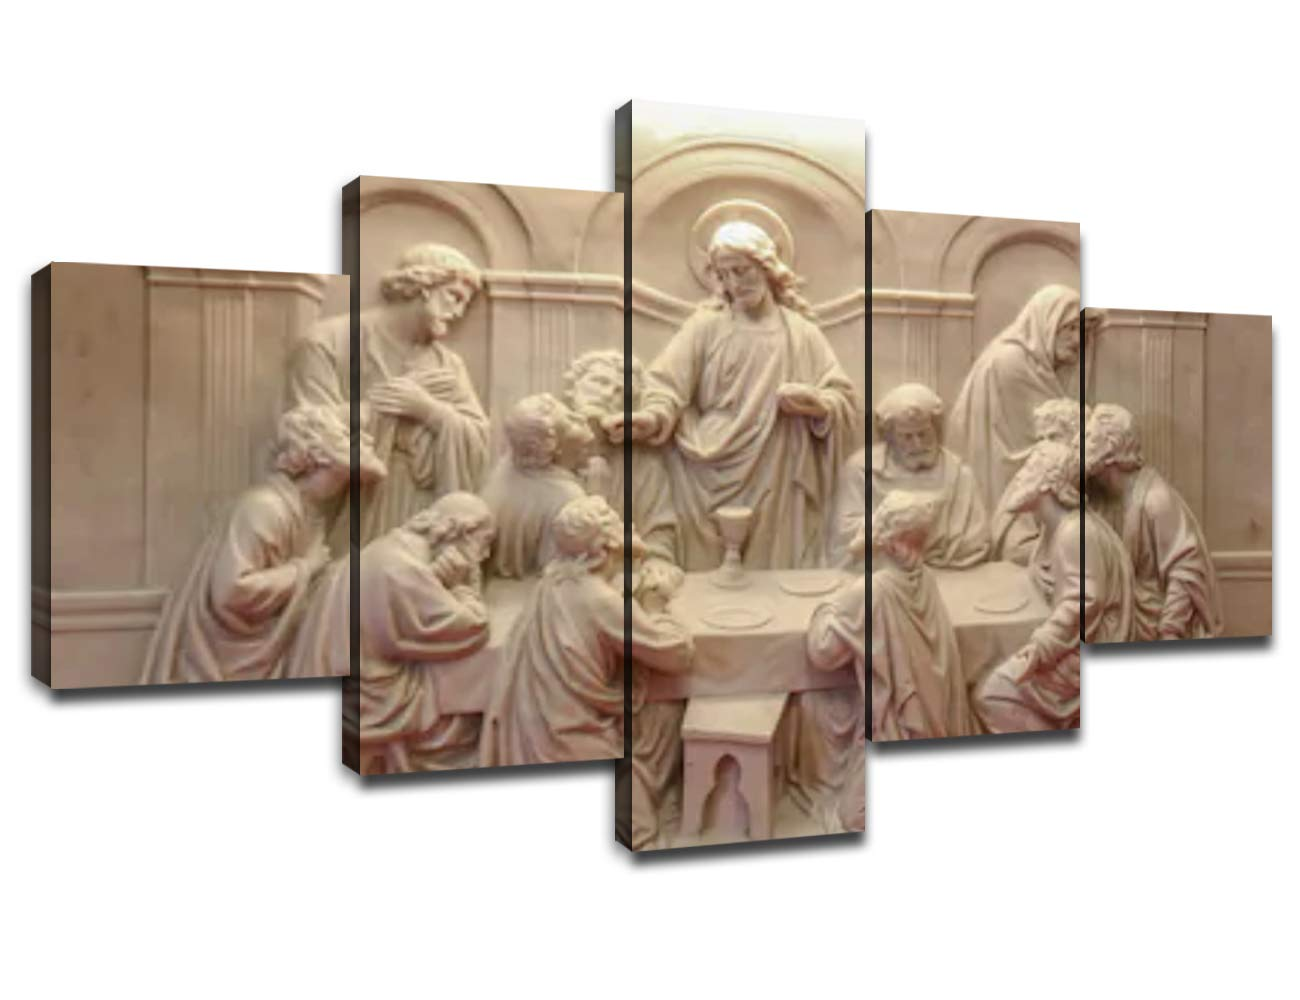 Jesus Last Supper Wall Decor for Living Room Pictures 5 Piece Canvas Prints Wall Art Christ Ultima Cena Paintings Bedroom Decoration for Home Poster Frame Christian Sculpture(60''Wx32''H)